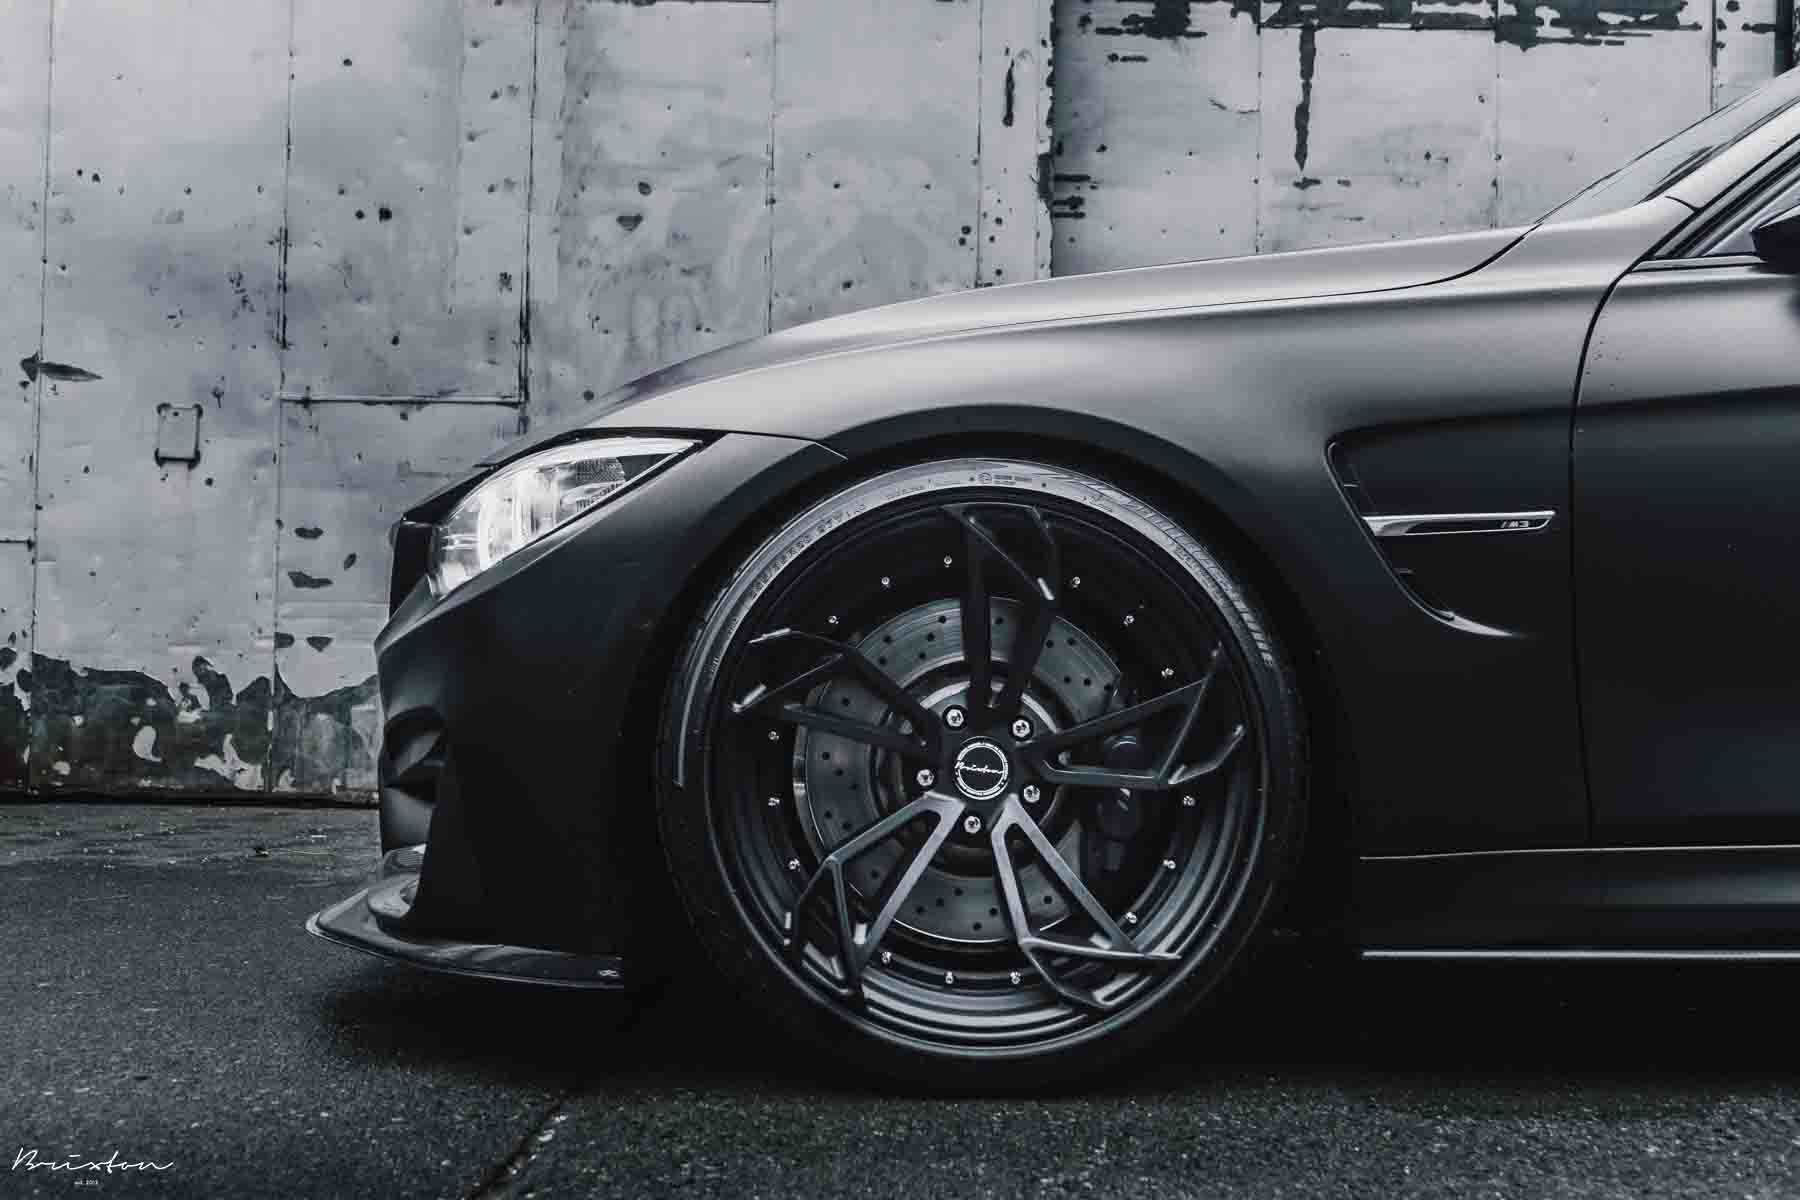 images-products-1-1950-232974238-brixton-forged-black-bmw-f80-m3-brixton-forged-pf1-duo-series-satin-black-concave-wheels-3.jpg